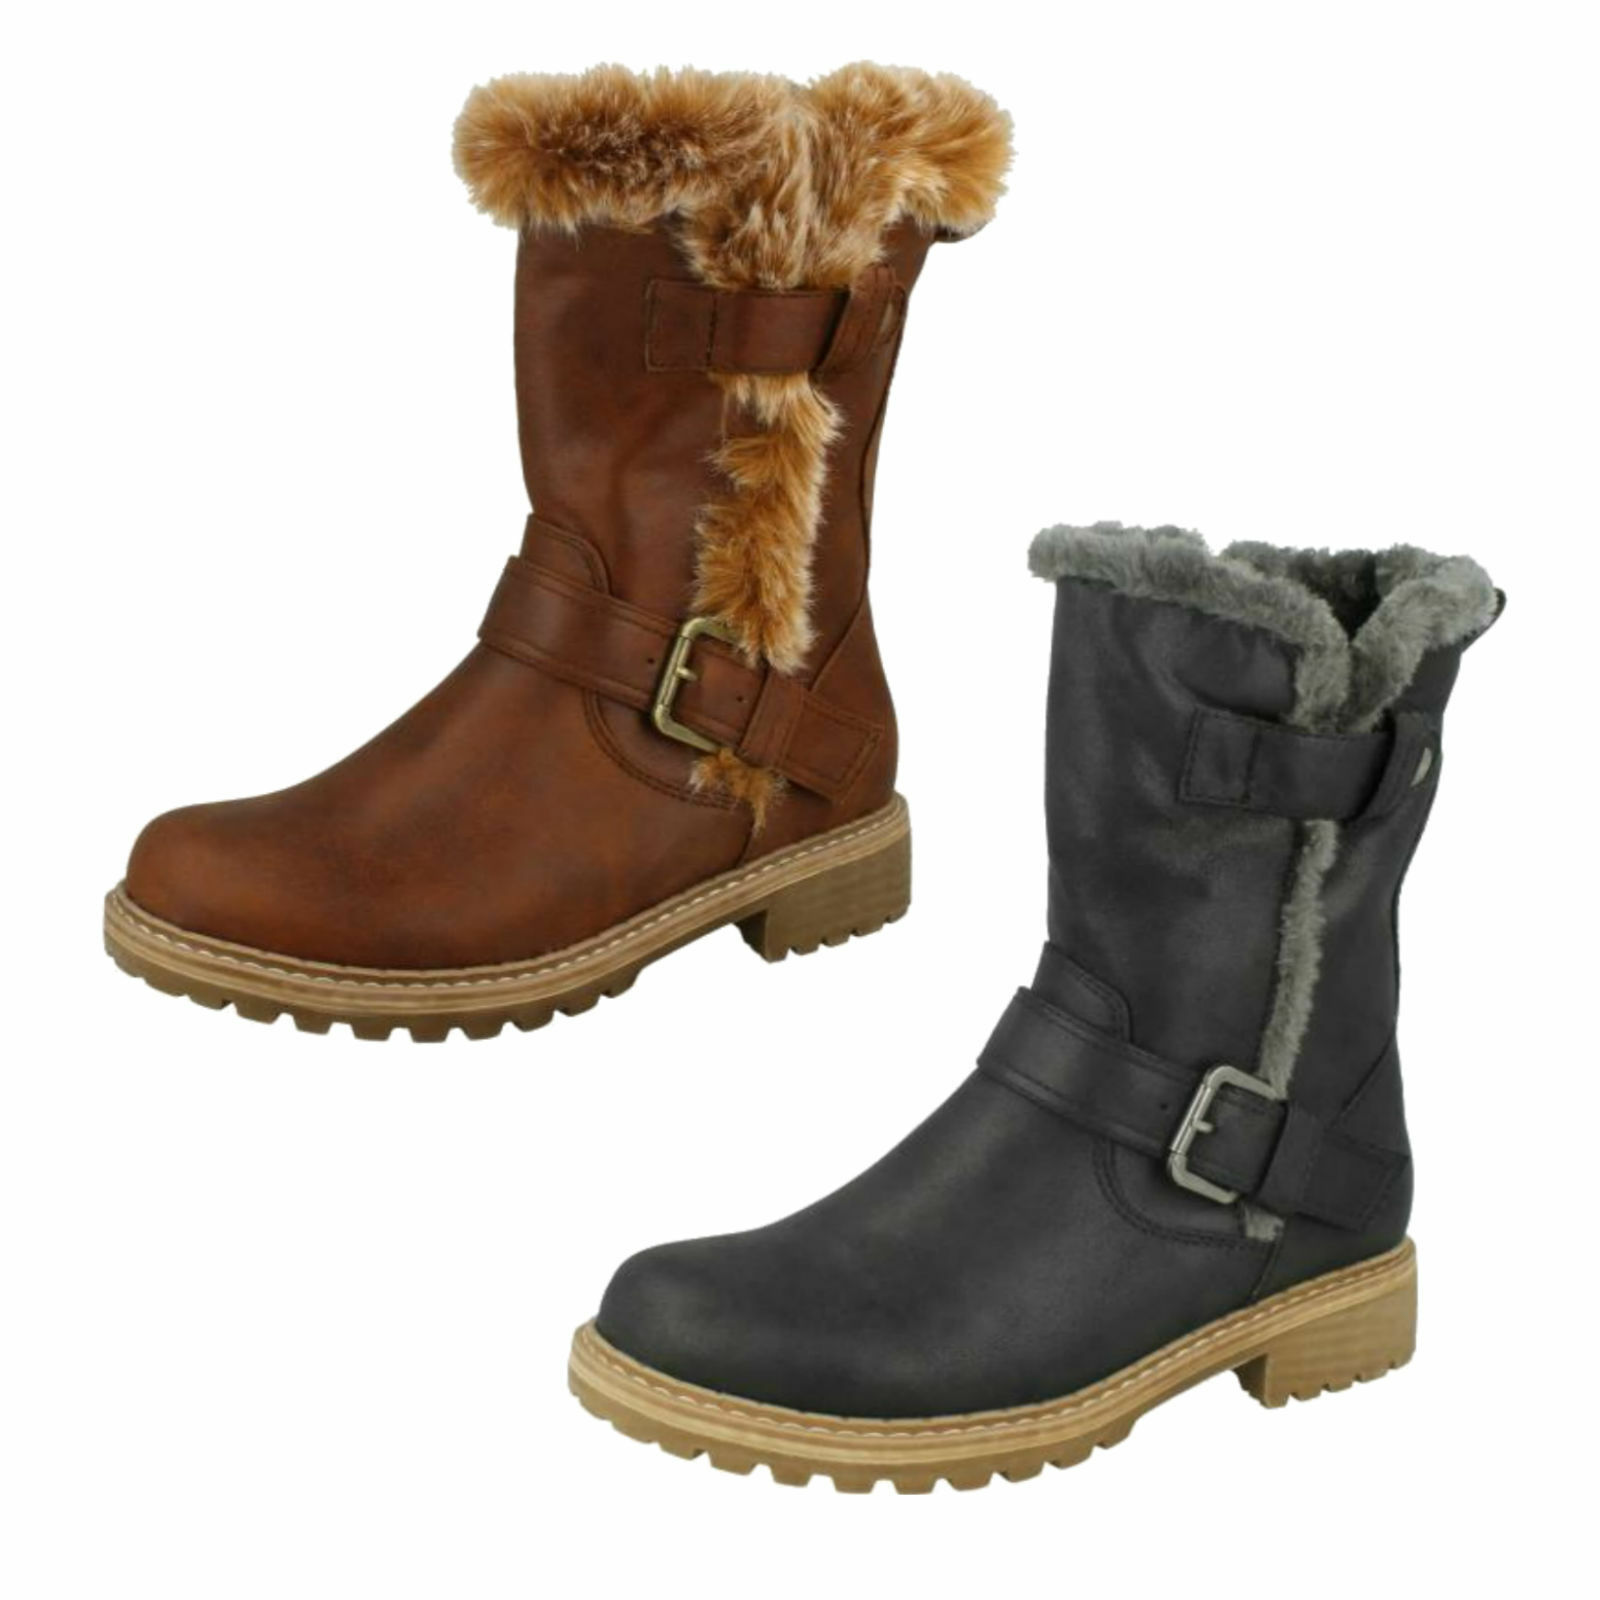 LADIES FAUX FUR LINED ZIP WARM WINTER BOOTS UK DOWN TO EARTH F50866 UK BOOTS SIZE 3 - 8 7e4936